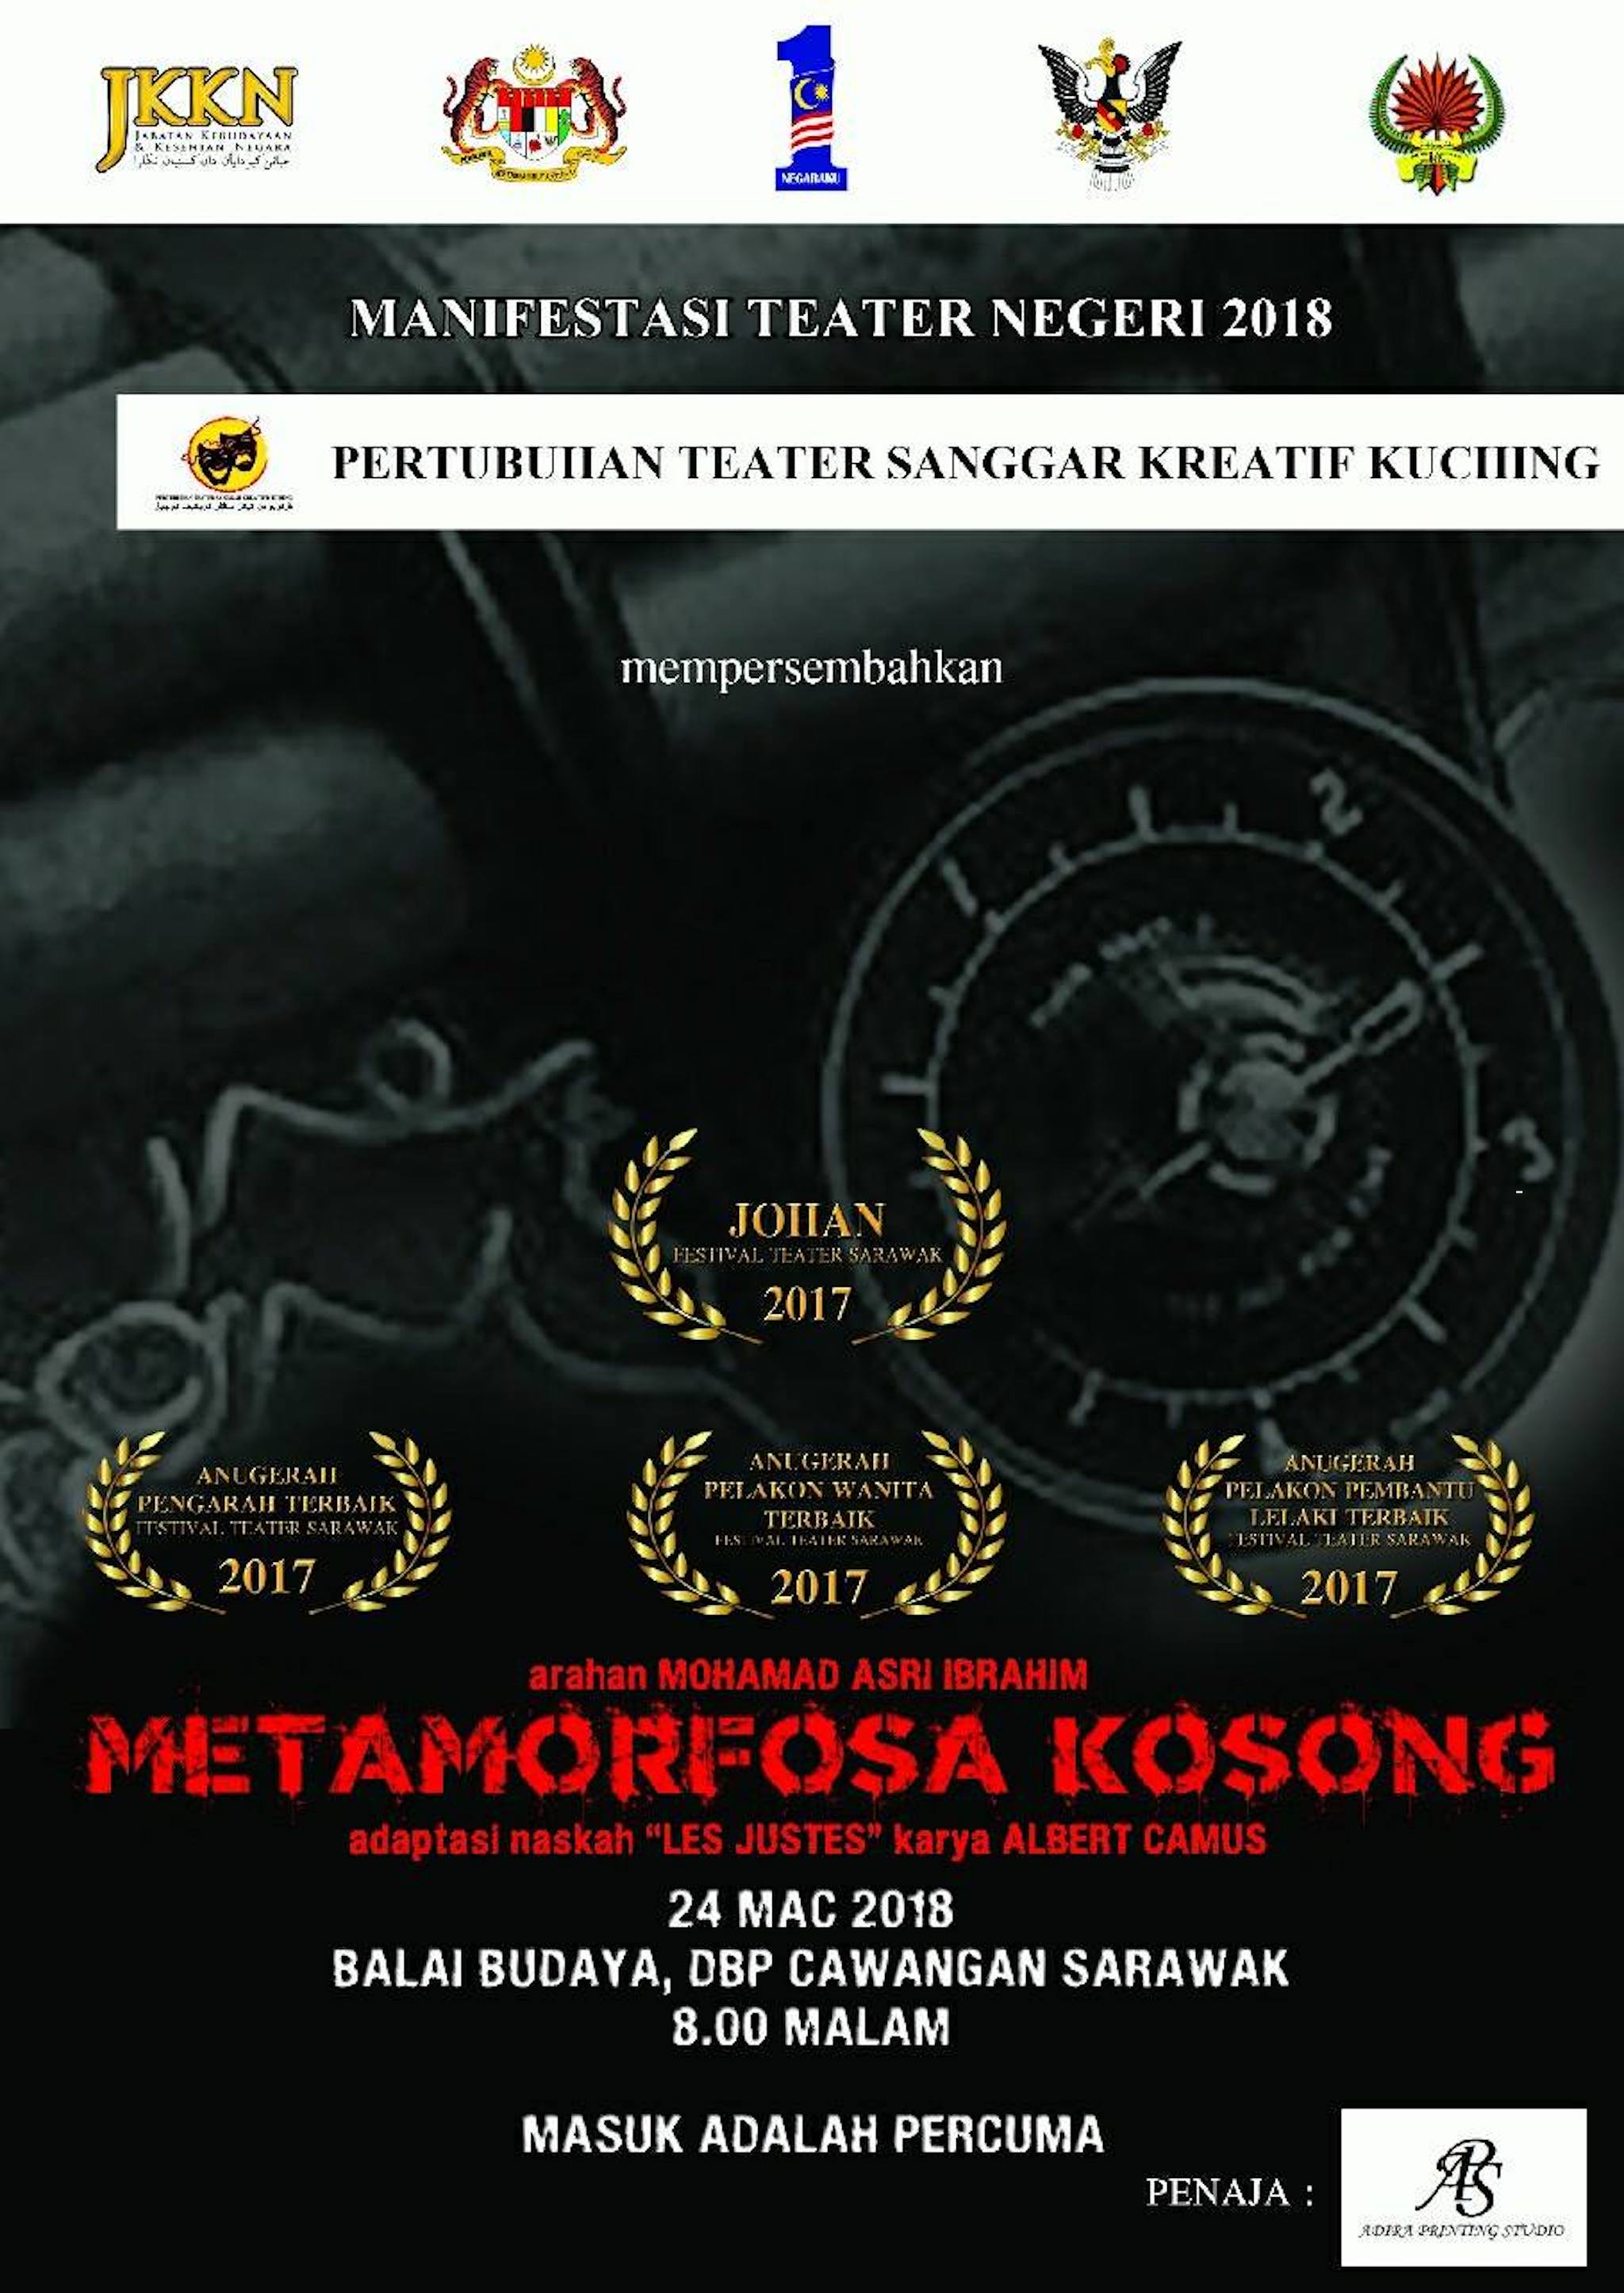 2018 Metamorfosa Kosong cover